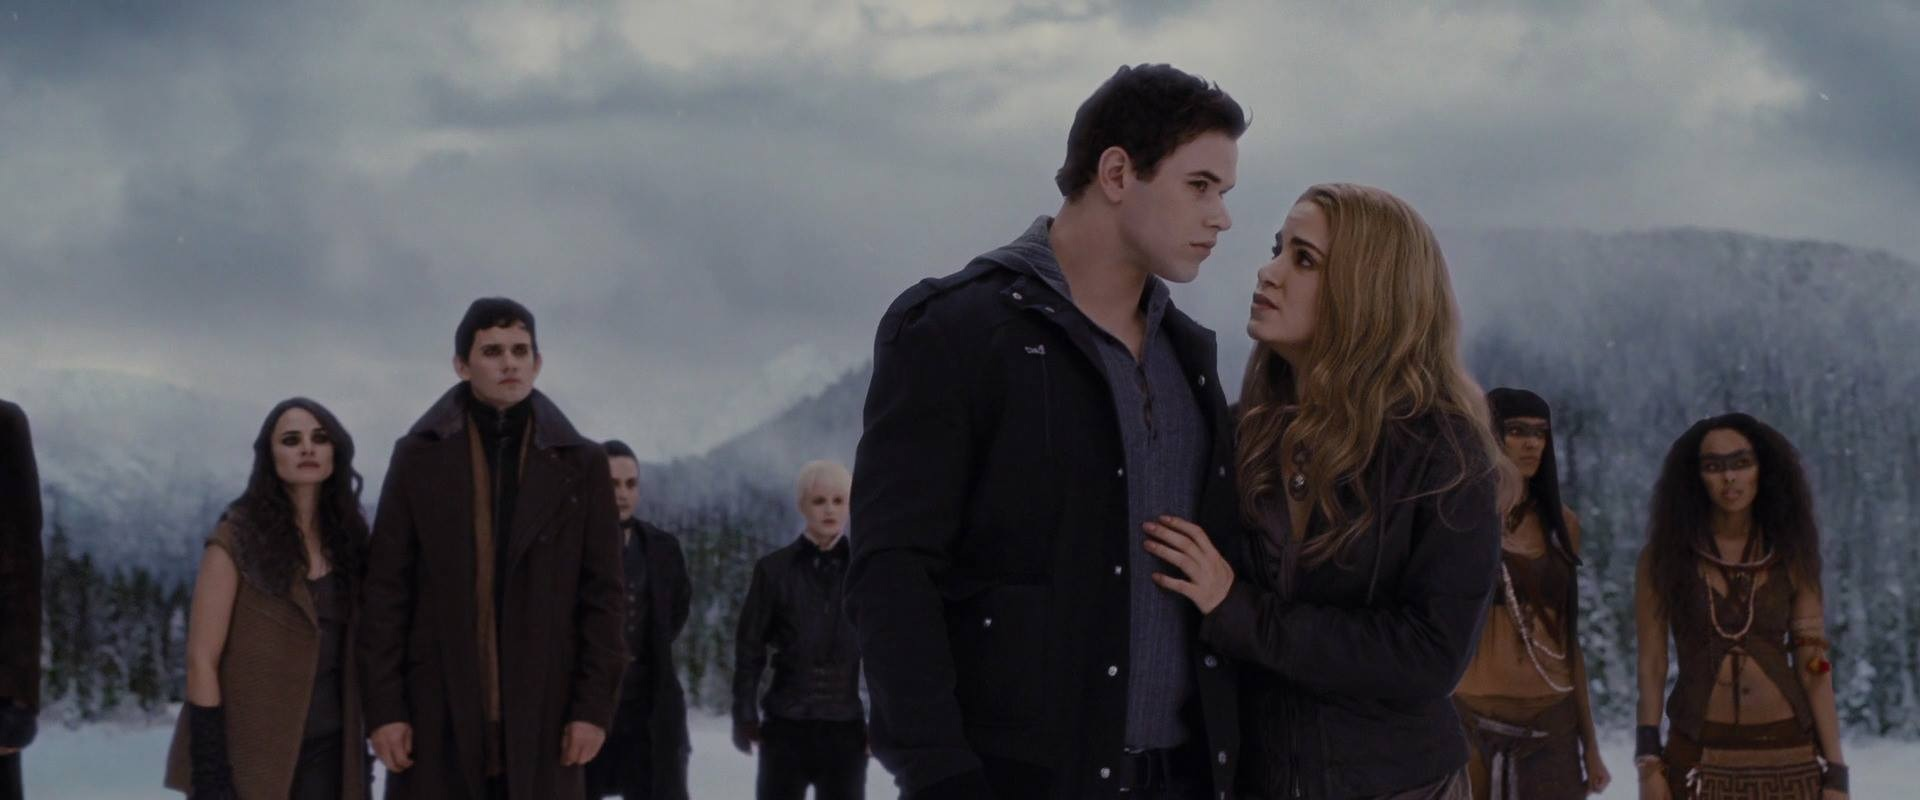 rosalie and emmett the cullen family photo 36952536